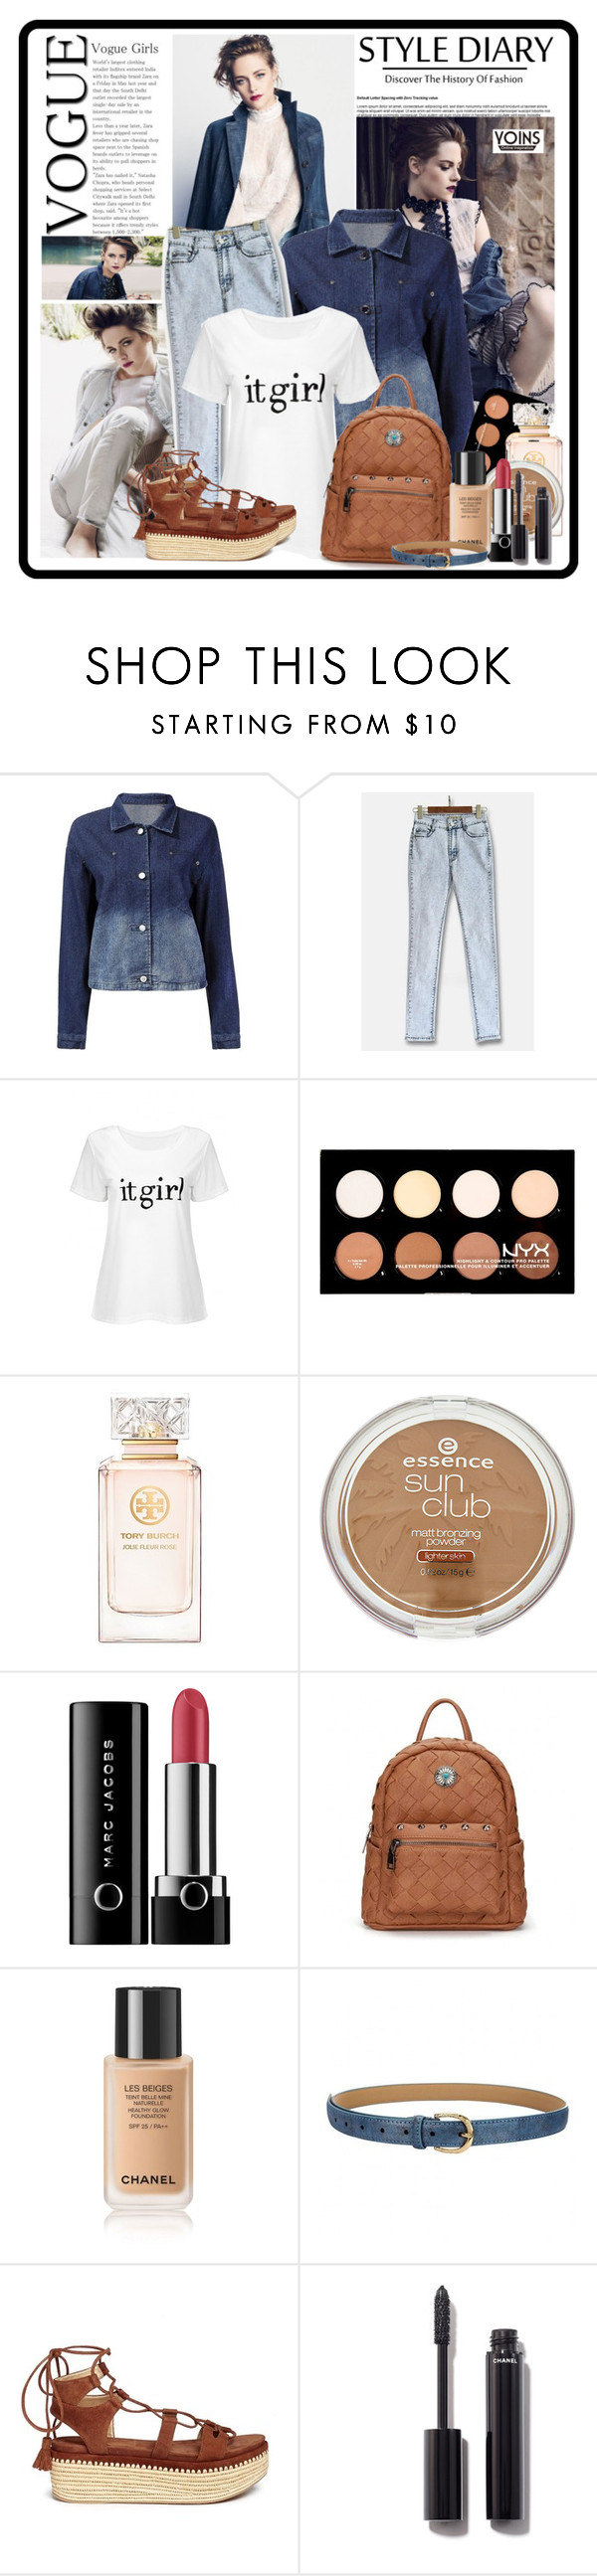 """""""Yoins 5..."""" by cindy88 ❤ liked on Polyvore featuring NYX, Tory Burch, Marc Jacobs, Stuart Weitzman, Chanel, yoins, yoinscollection and loveyoins"""